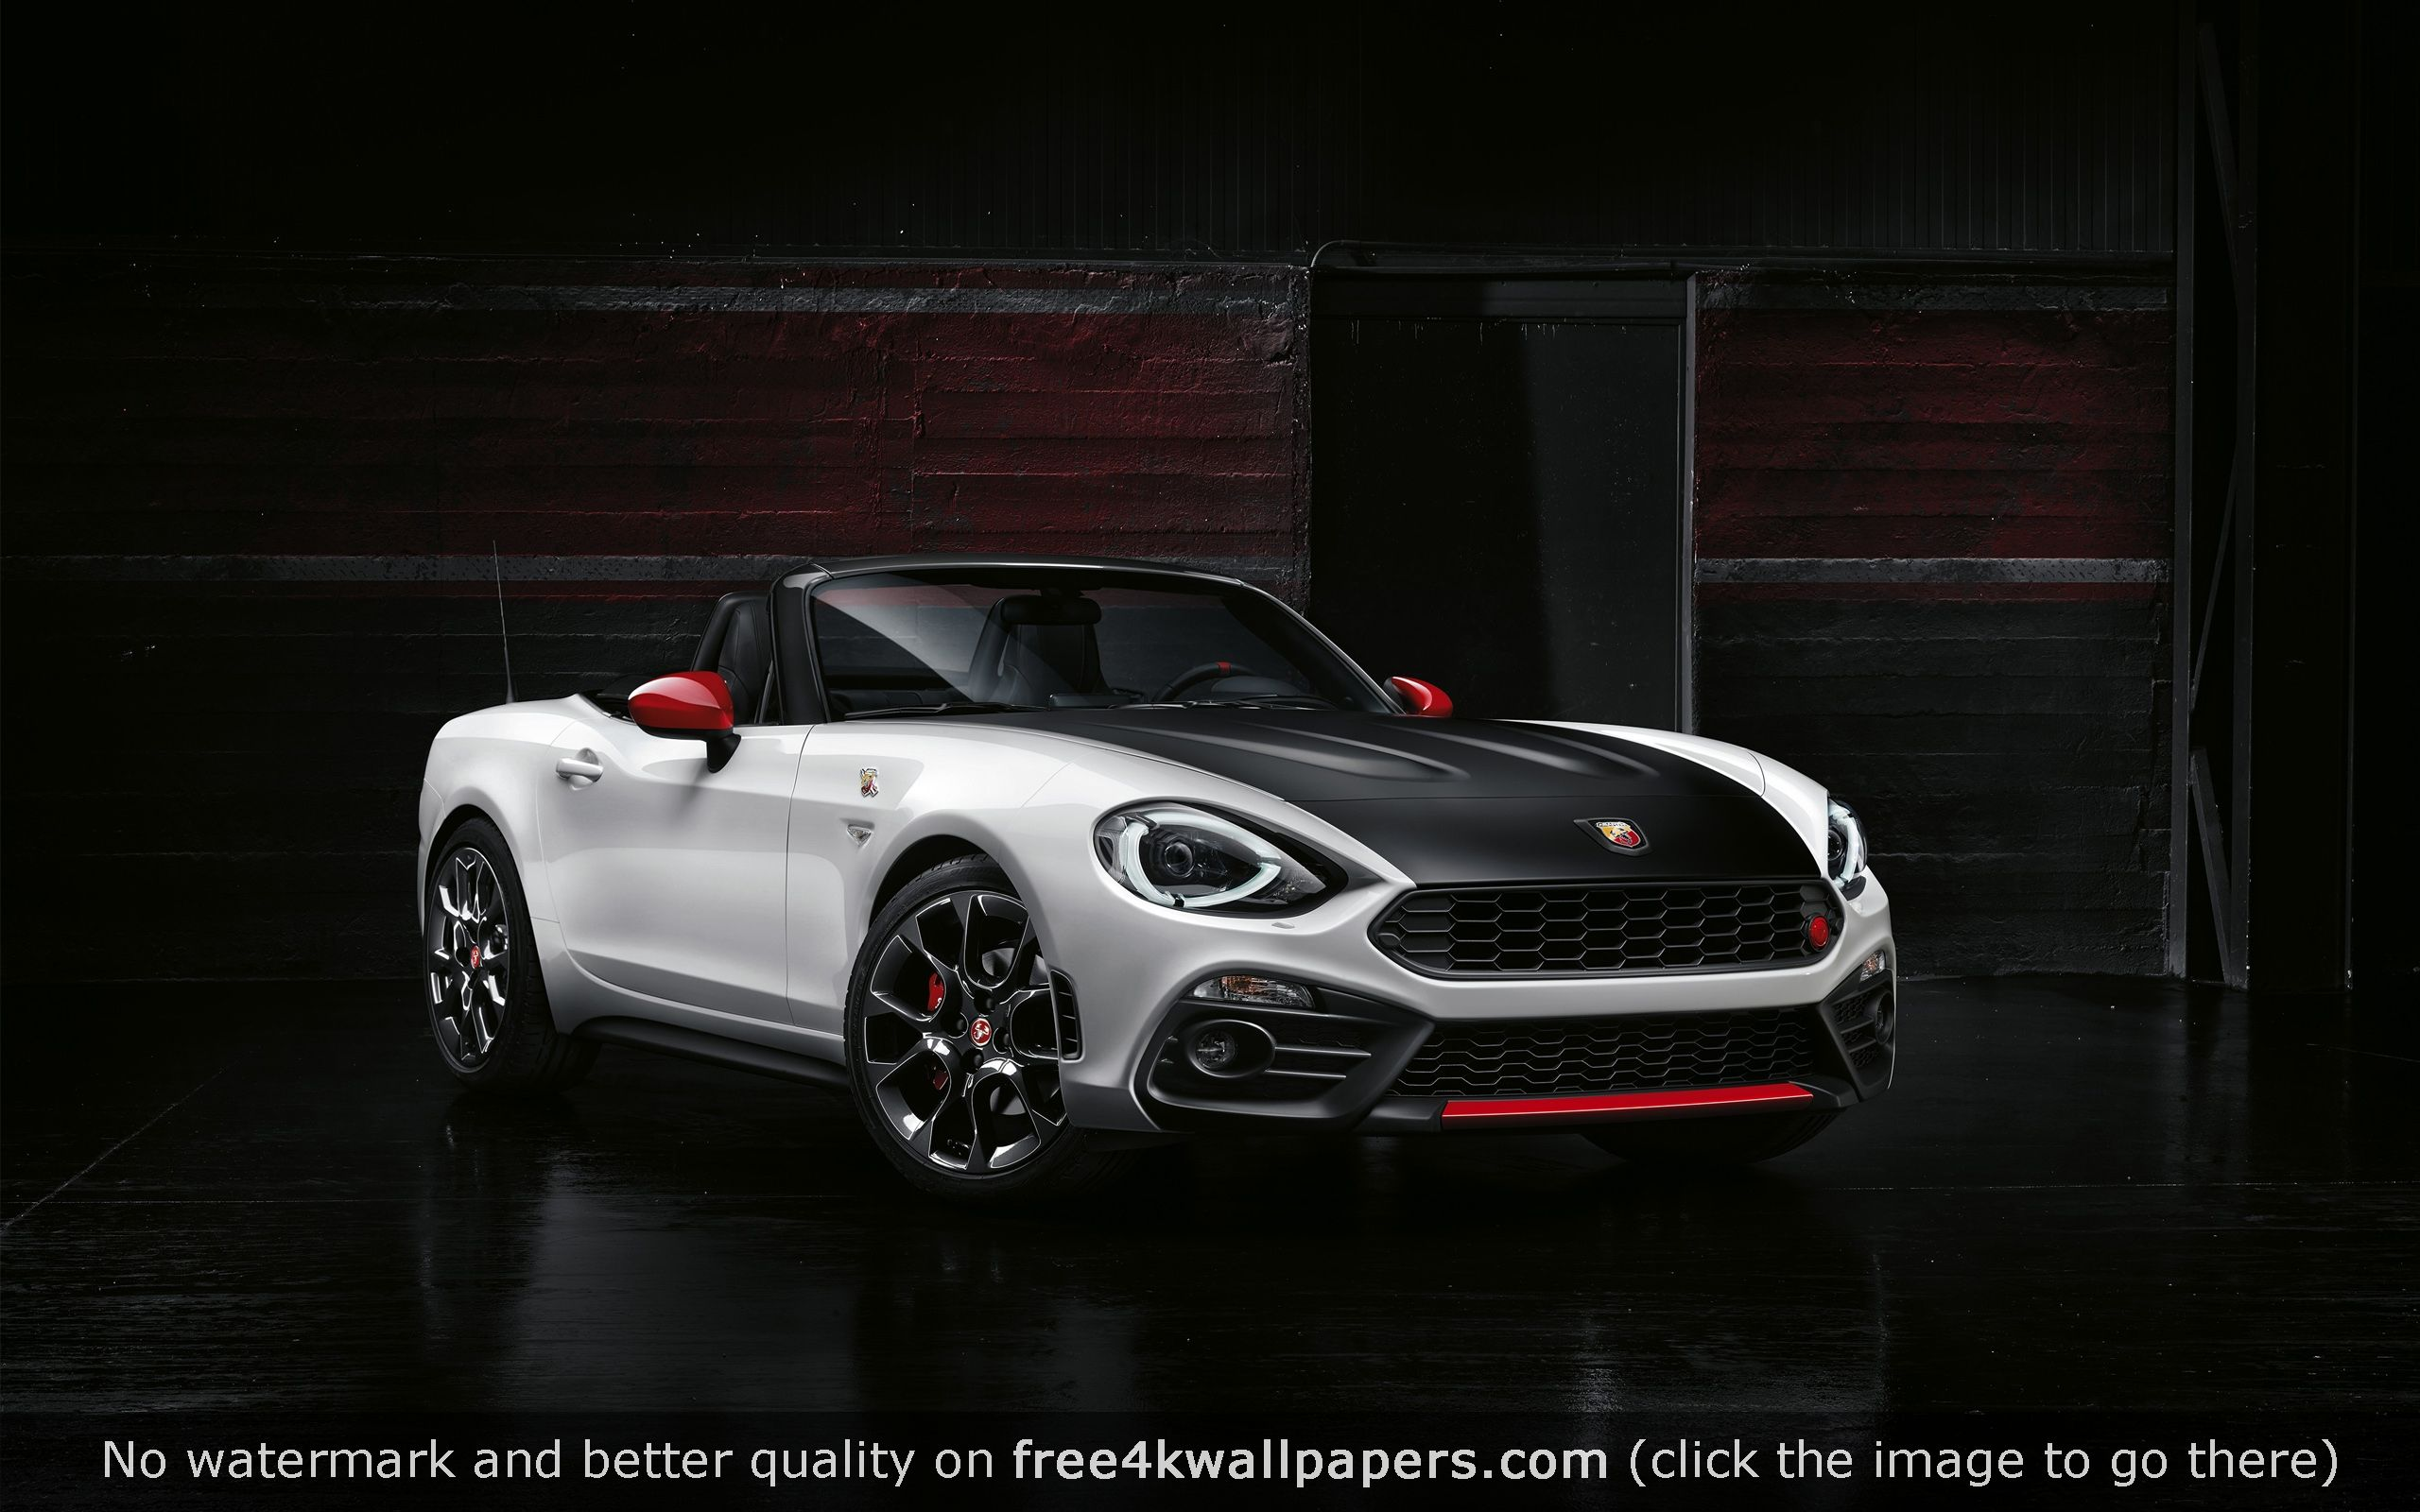 fiat spider abarth 4k or hd wallpaper for your pc, mac or mobile